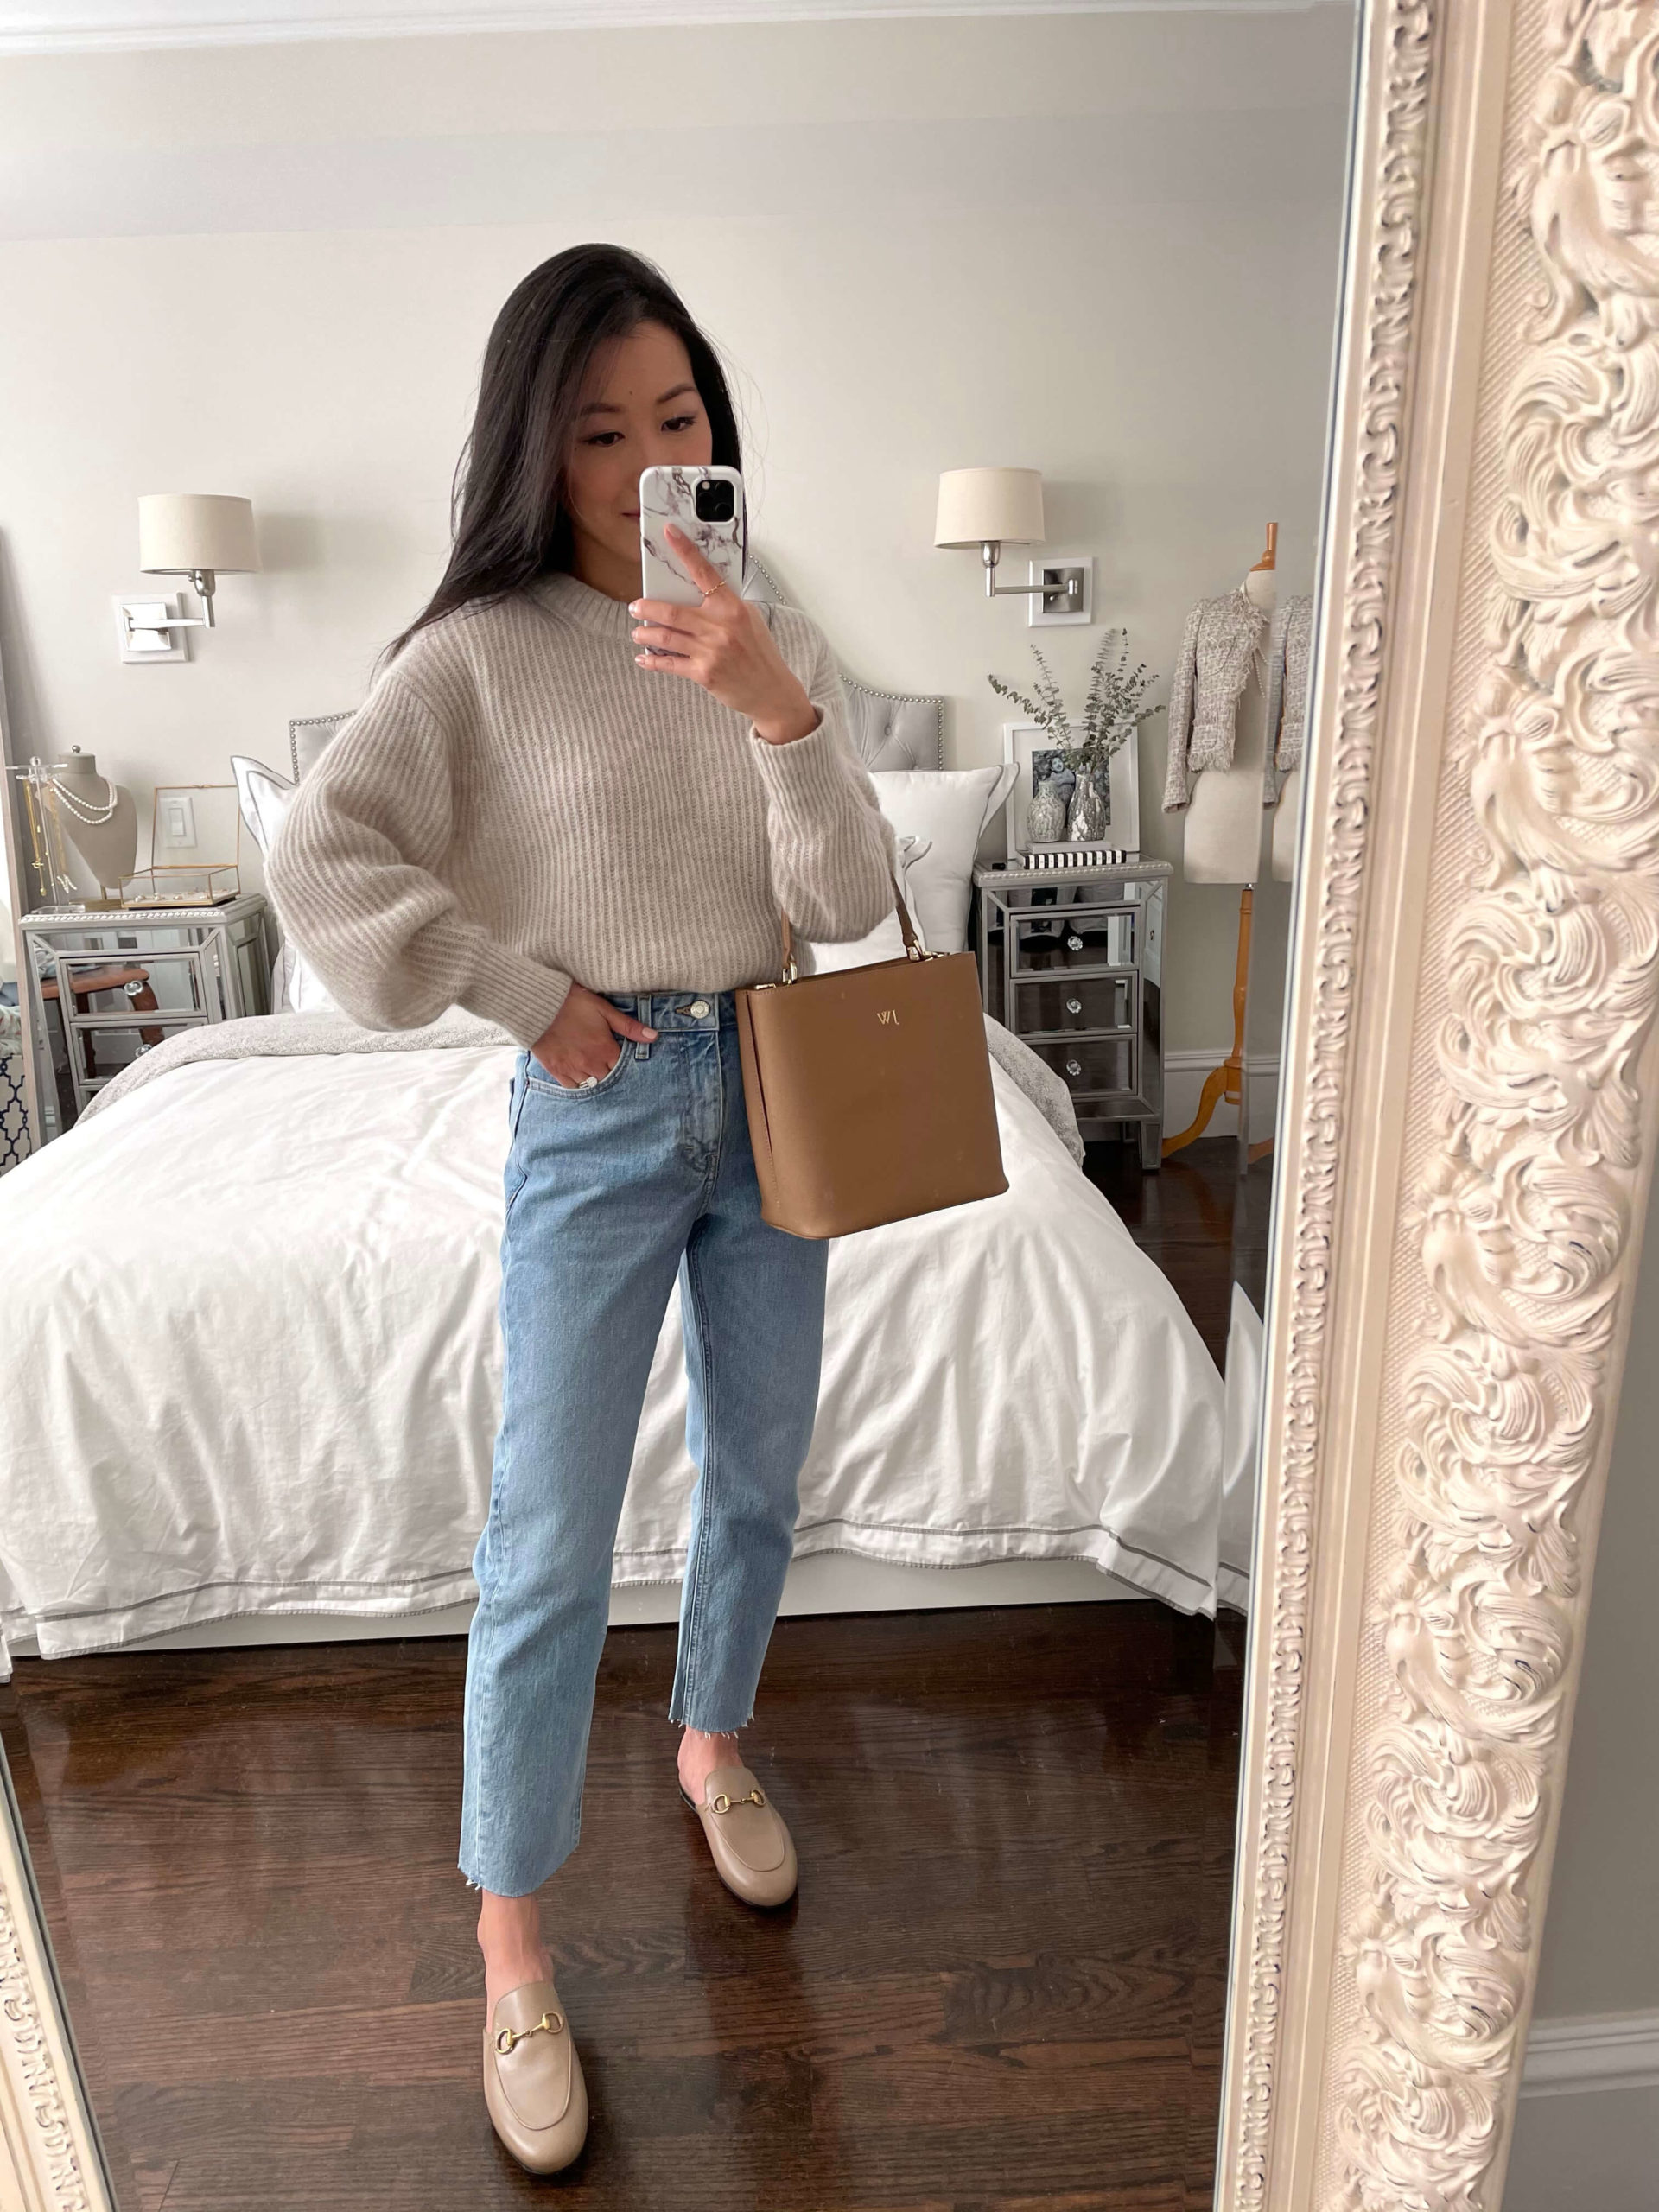 Gucci loafer spring outfit